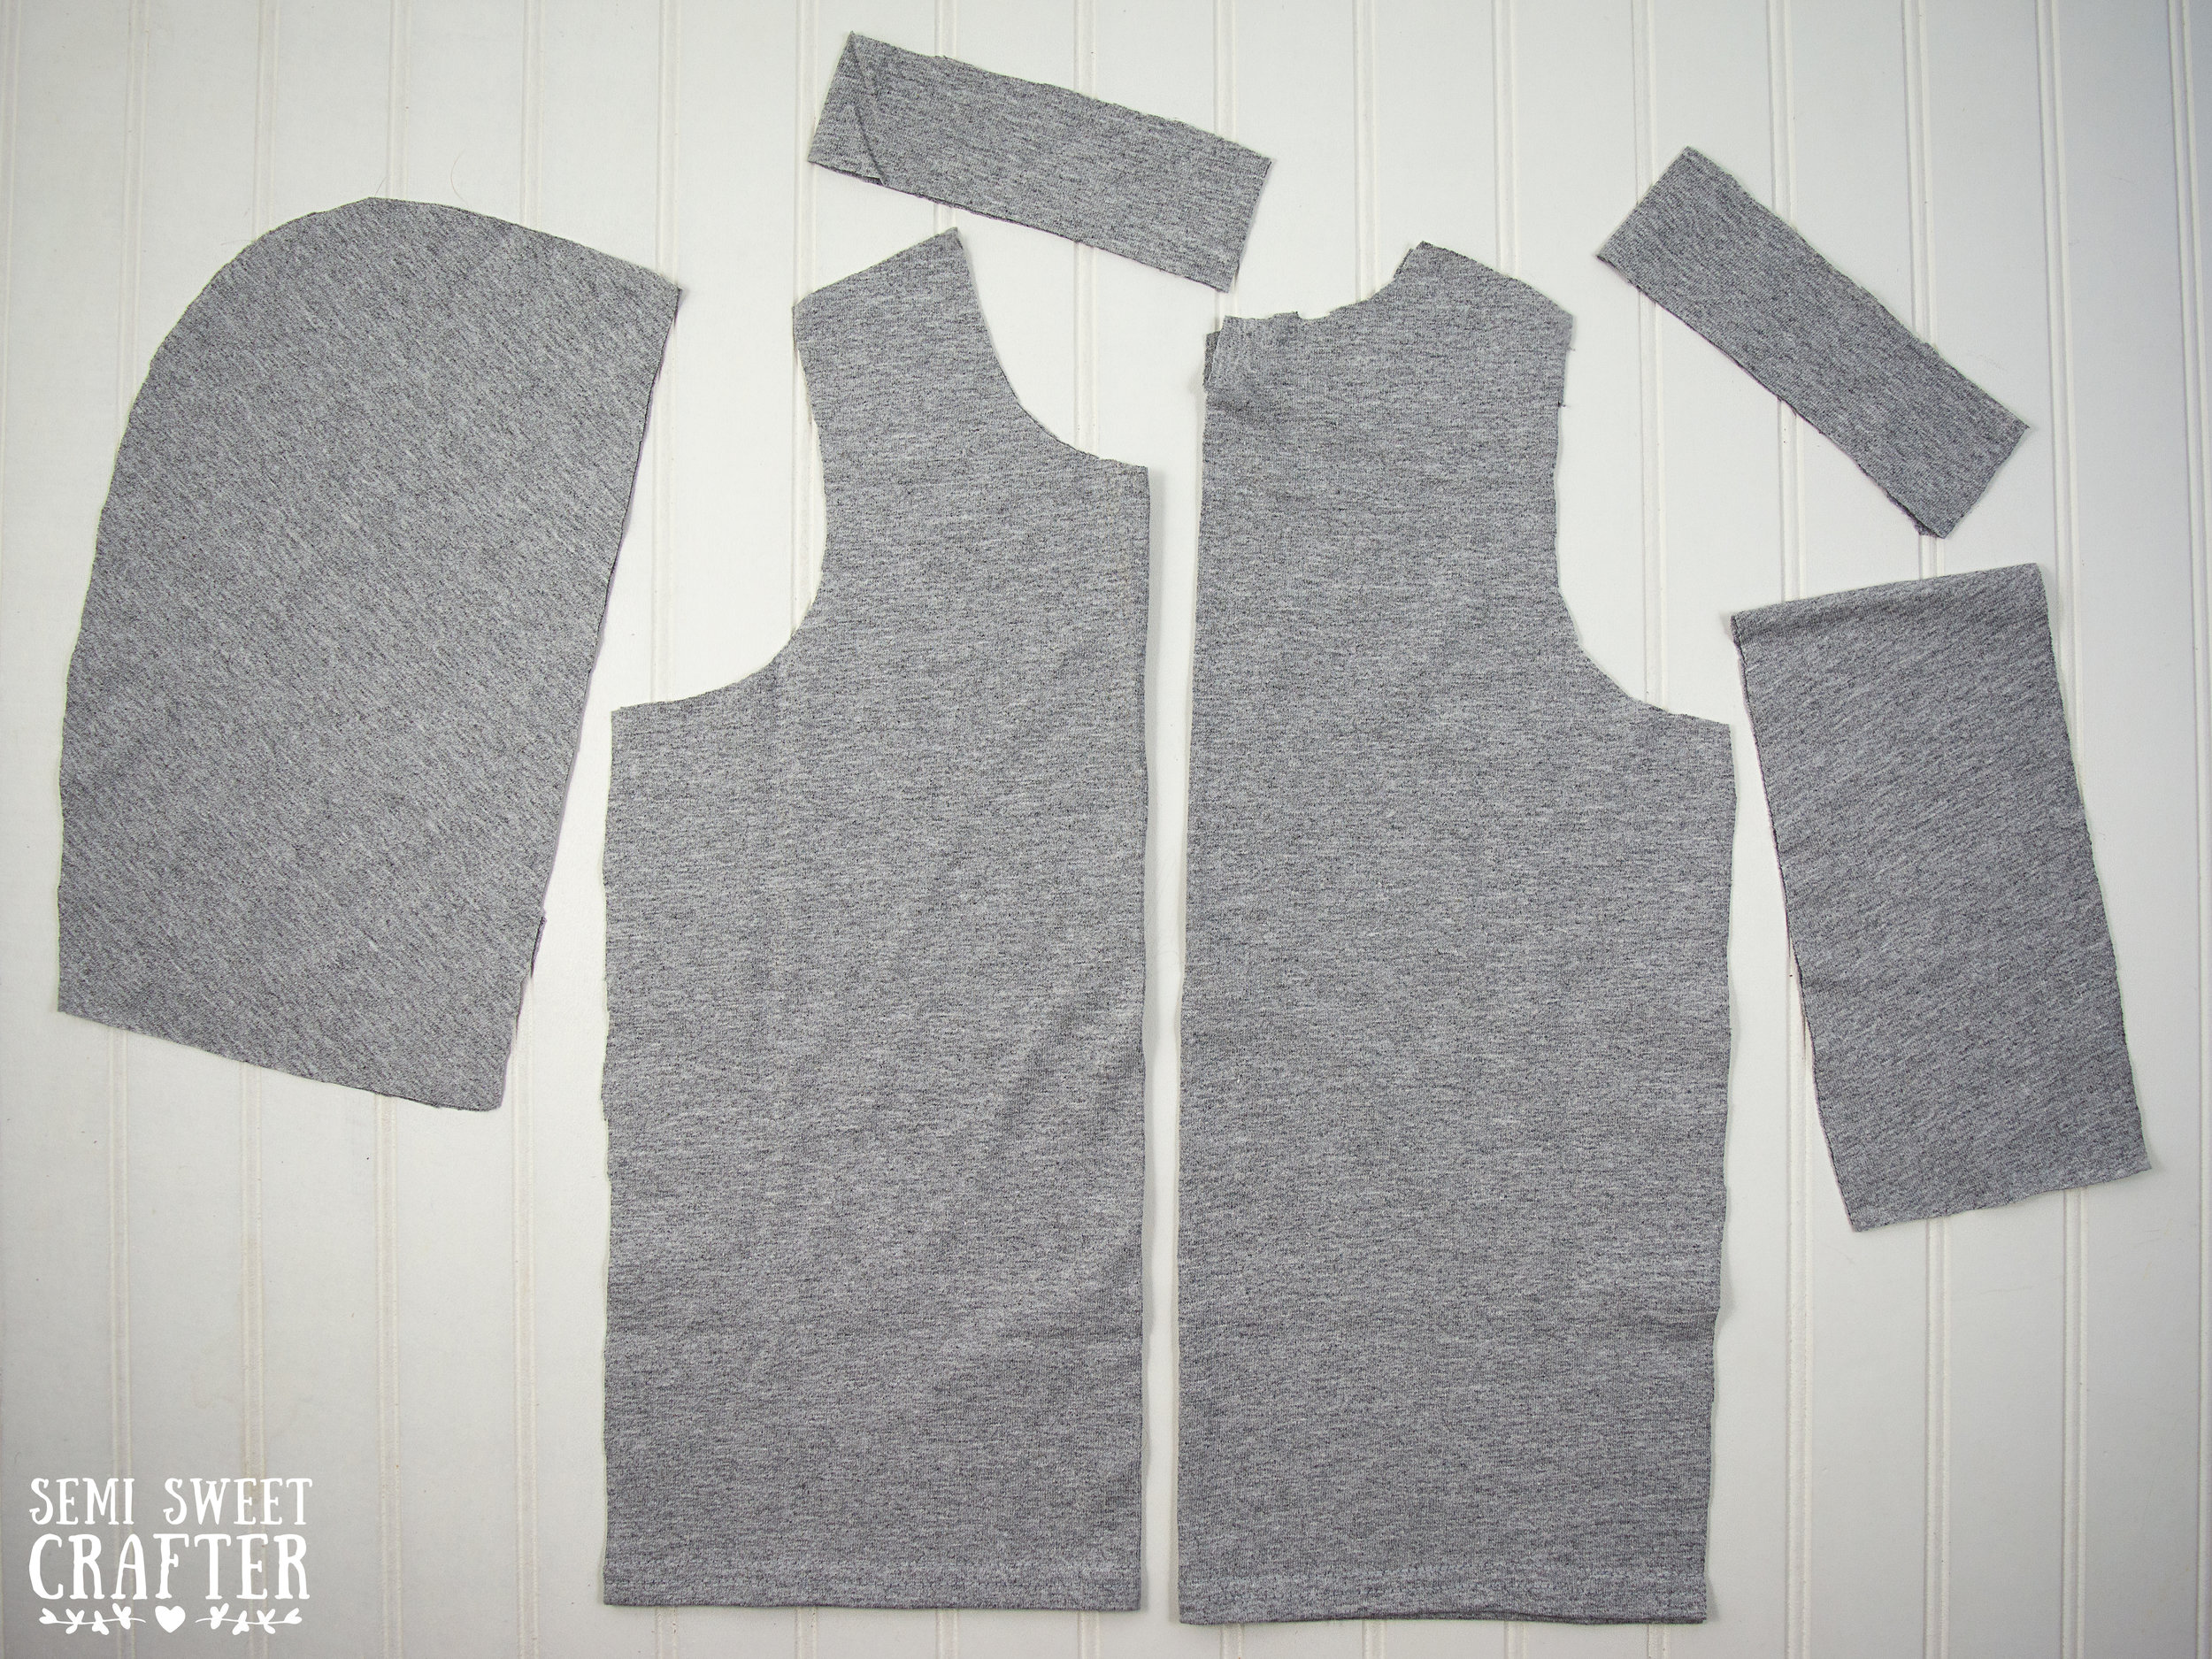 Blank Adult Shirt Tailored Into Kid's Apparel- Sewing Project by Semi Sweet Crafter